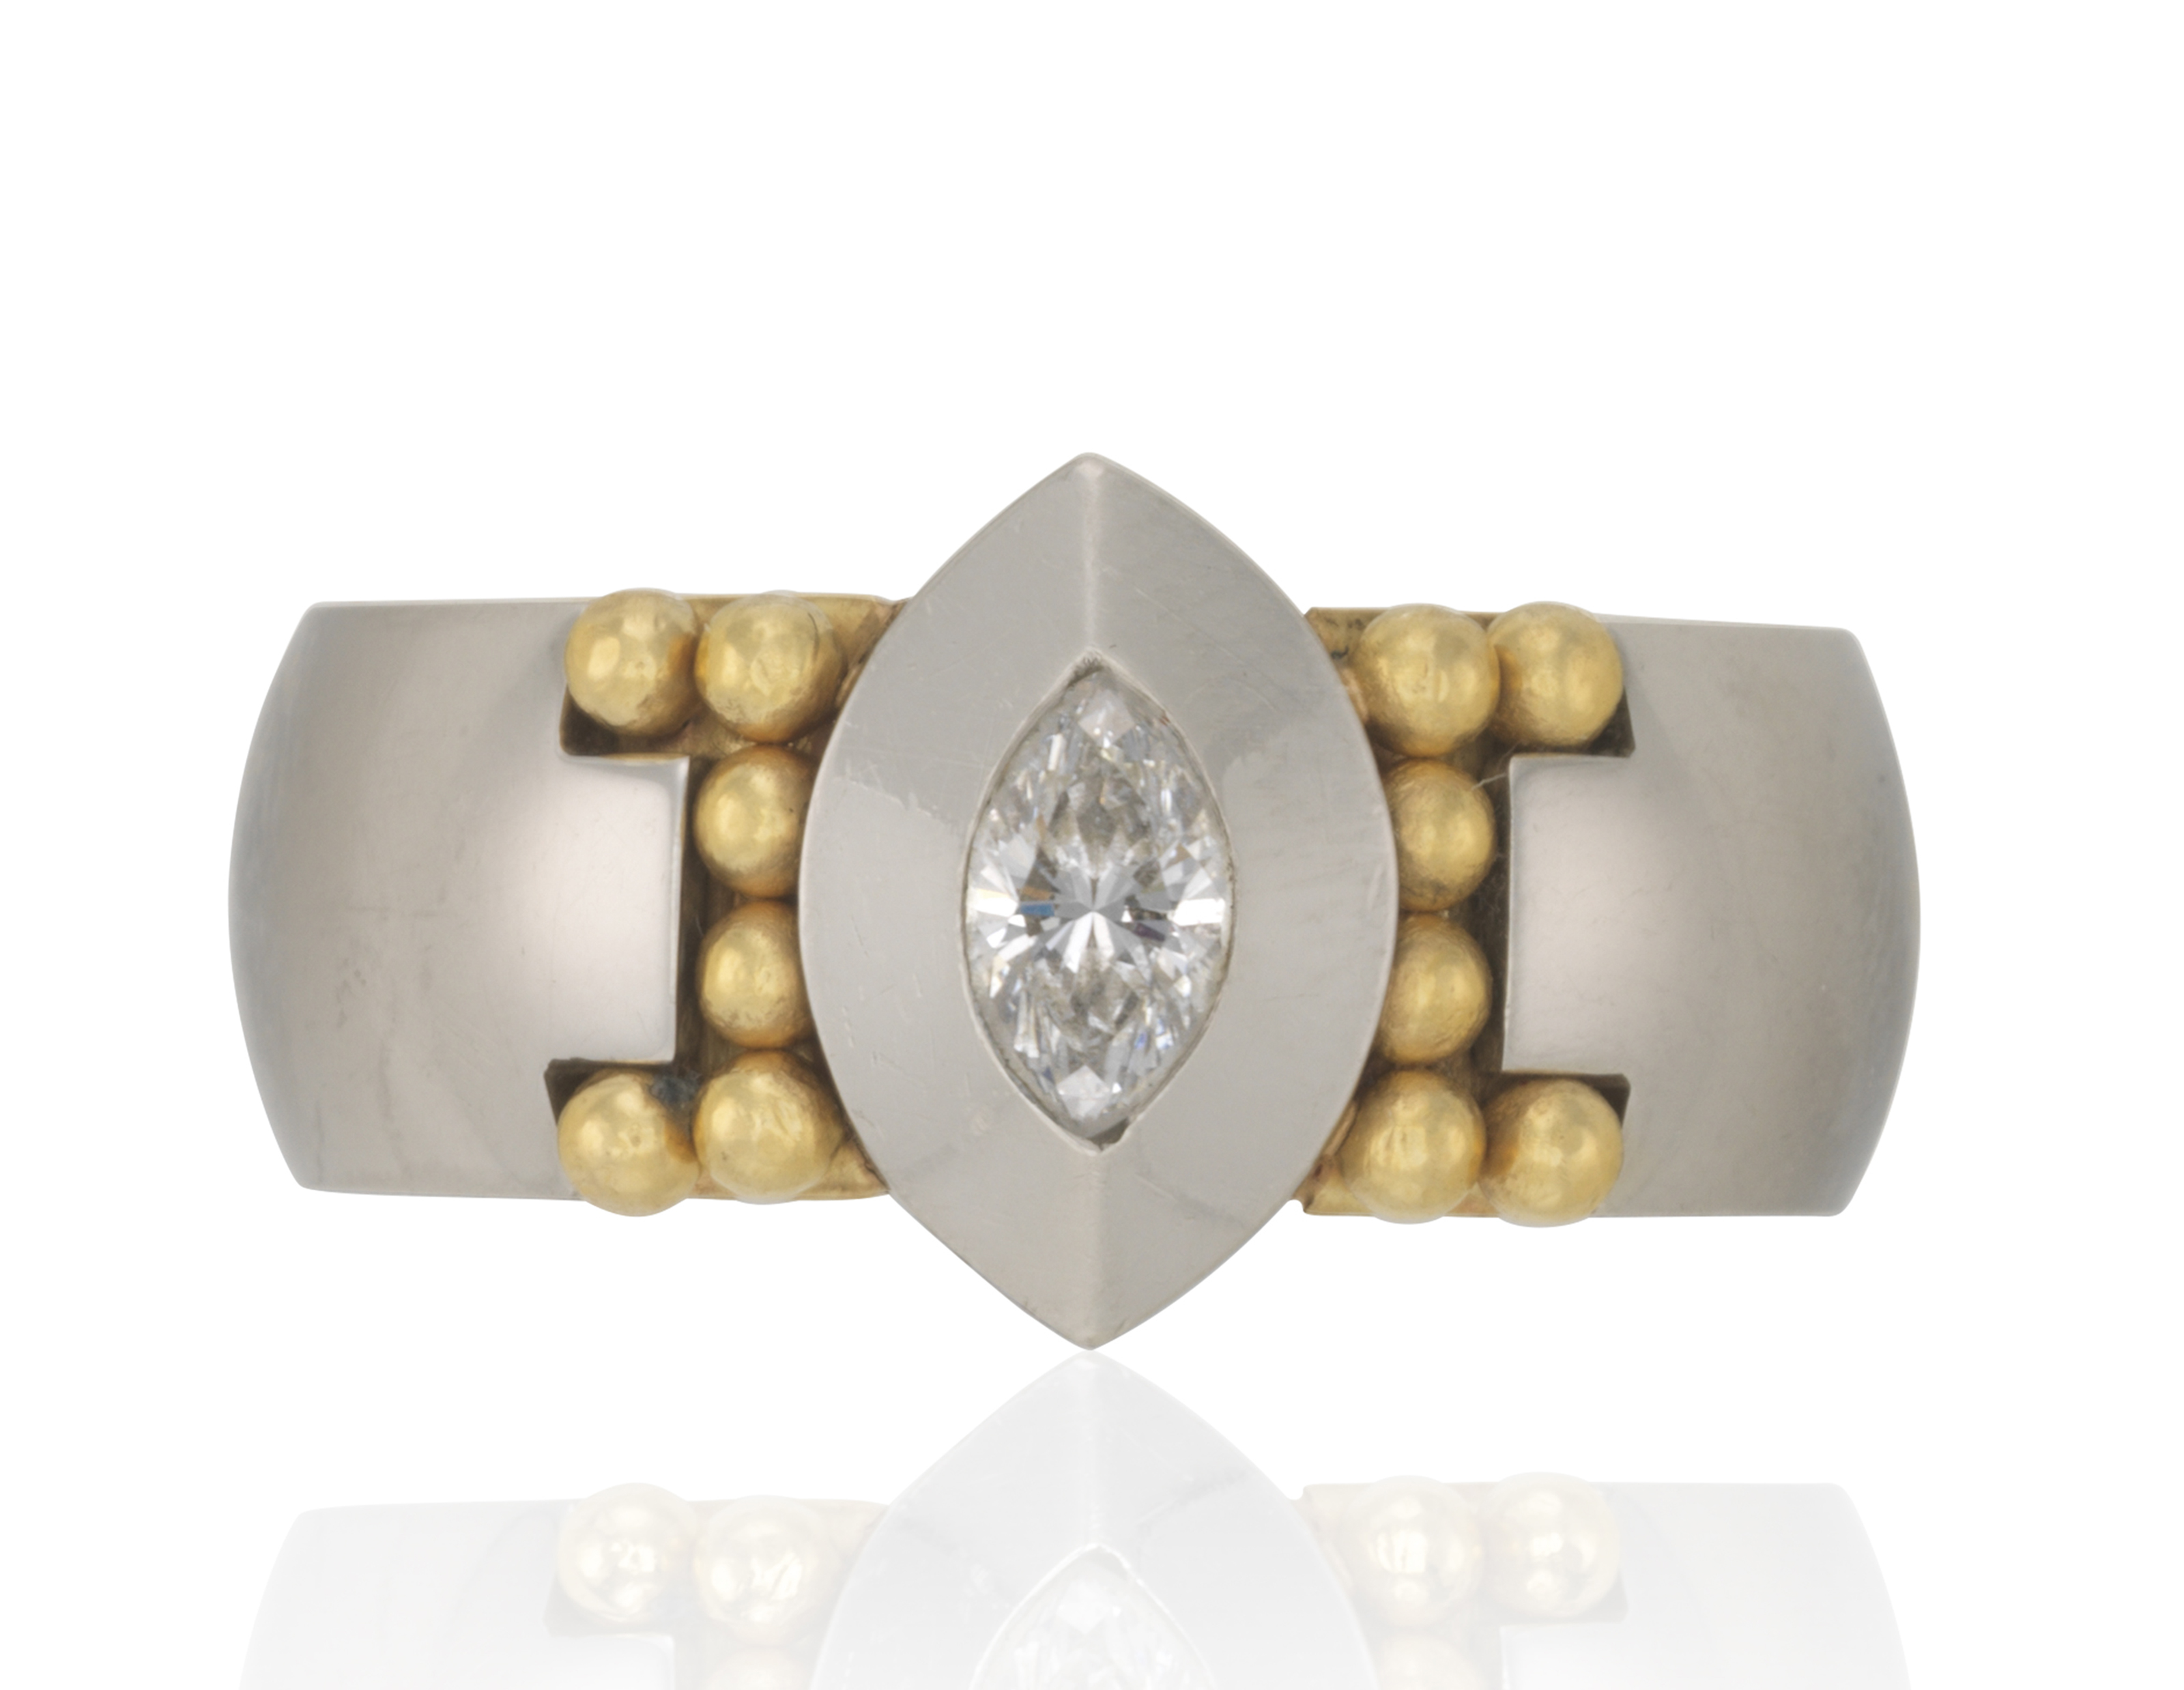 GEORG JENSEN DIAMOND RING